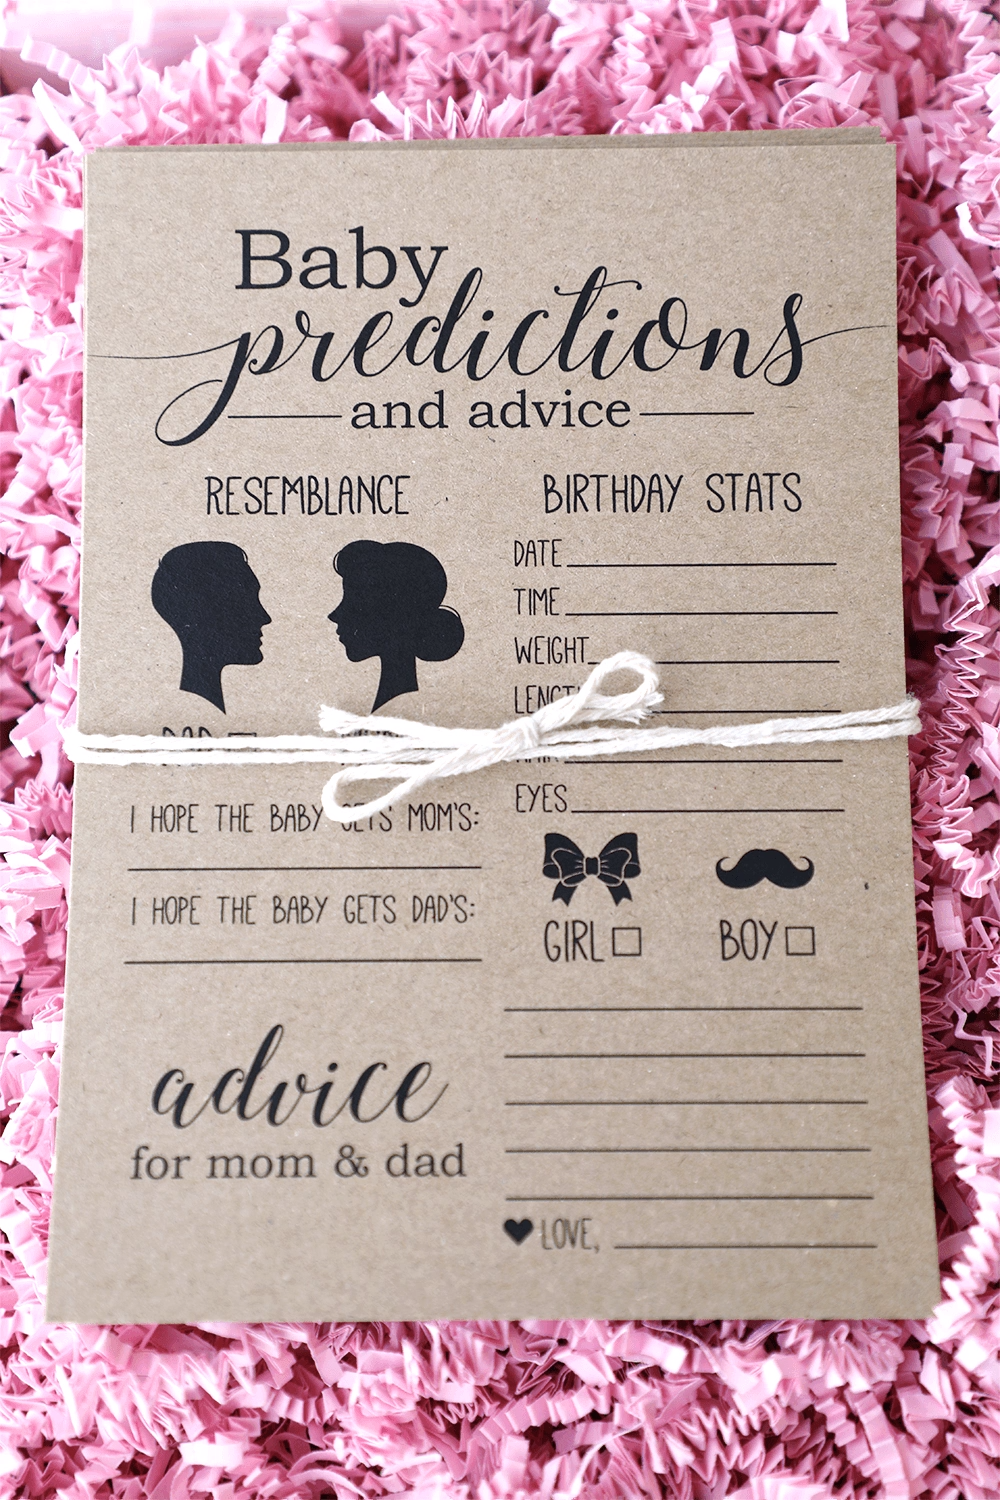 Baby Prediction Cards, Baby Predictions, Instant Download, Baby Shower Games, Baby Shower Activities, Printable